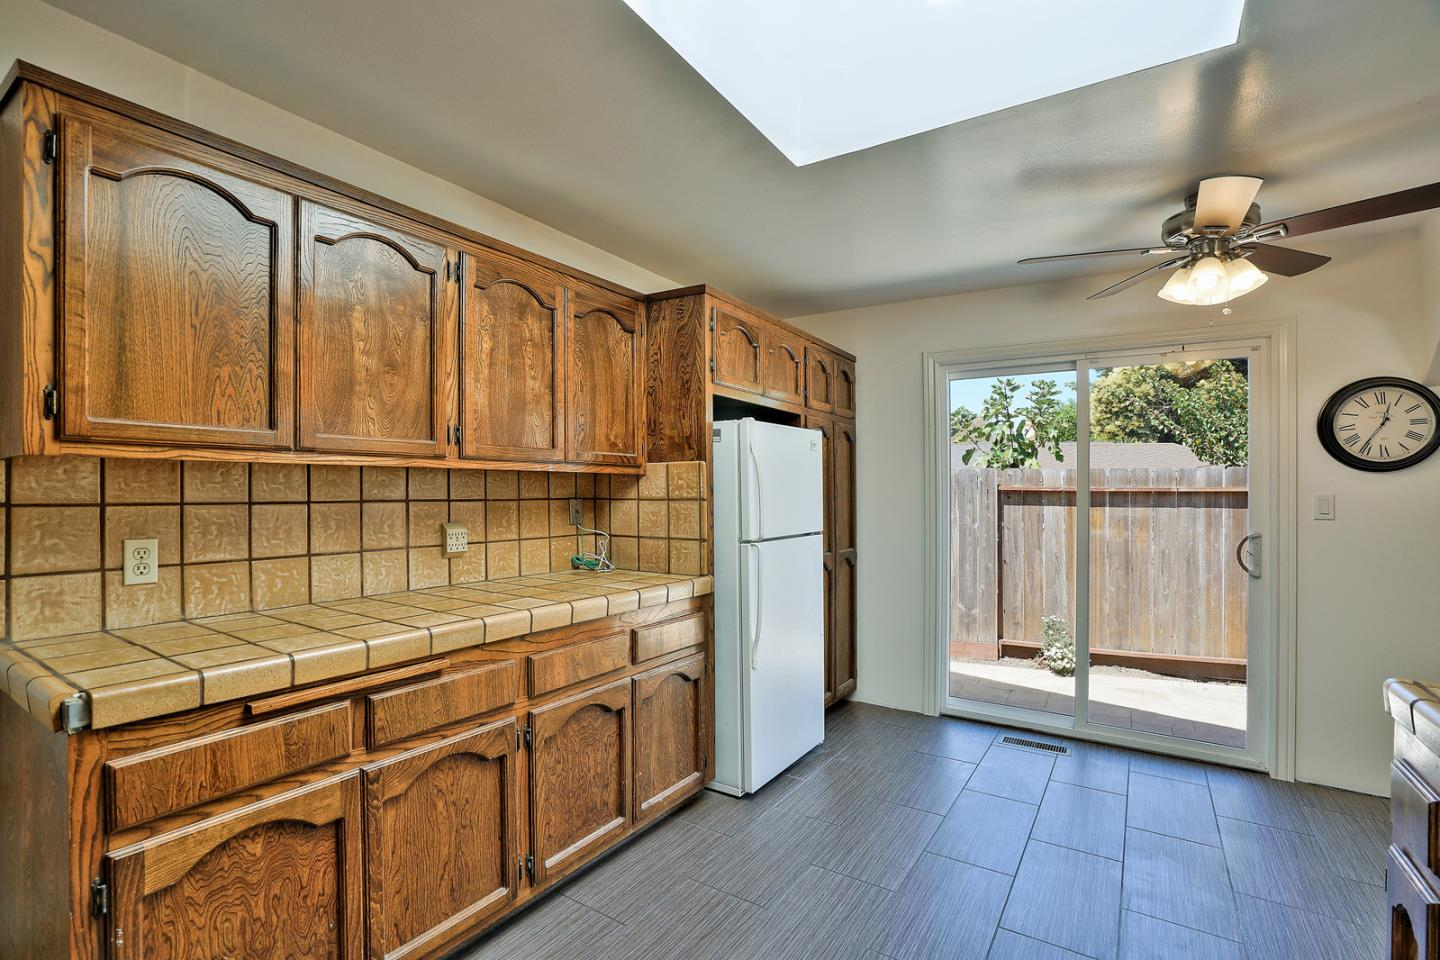 16068 Via Cordoba San Lorenzo, CA 94580 - MLS #: ML81722513